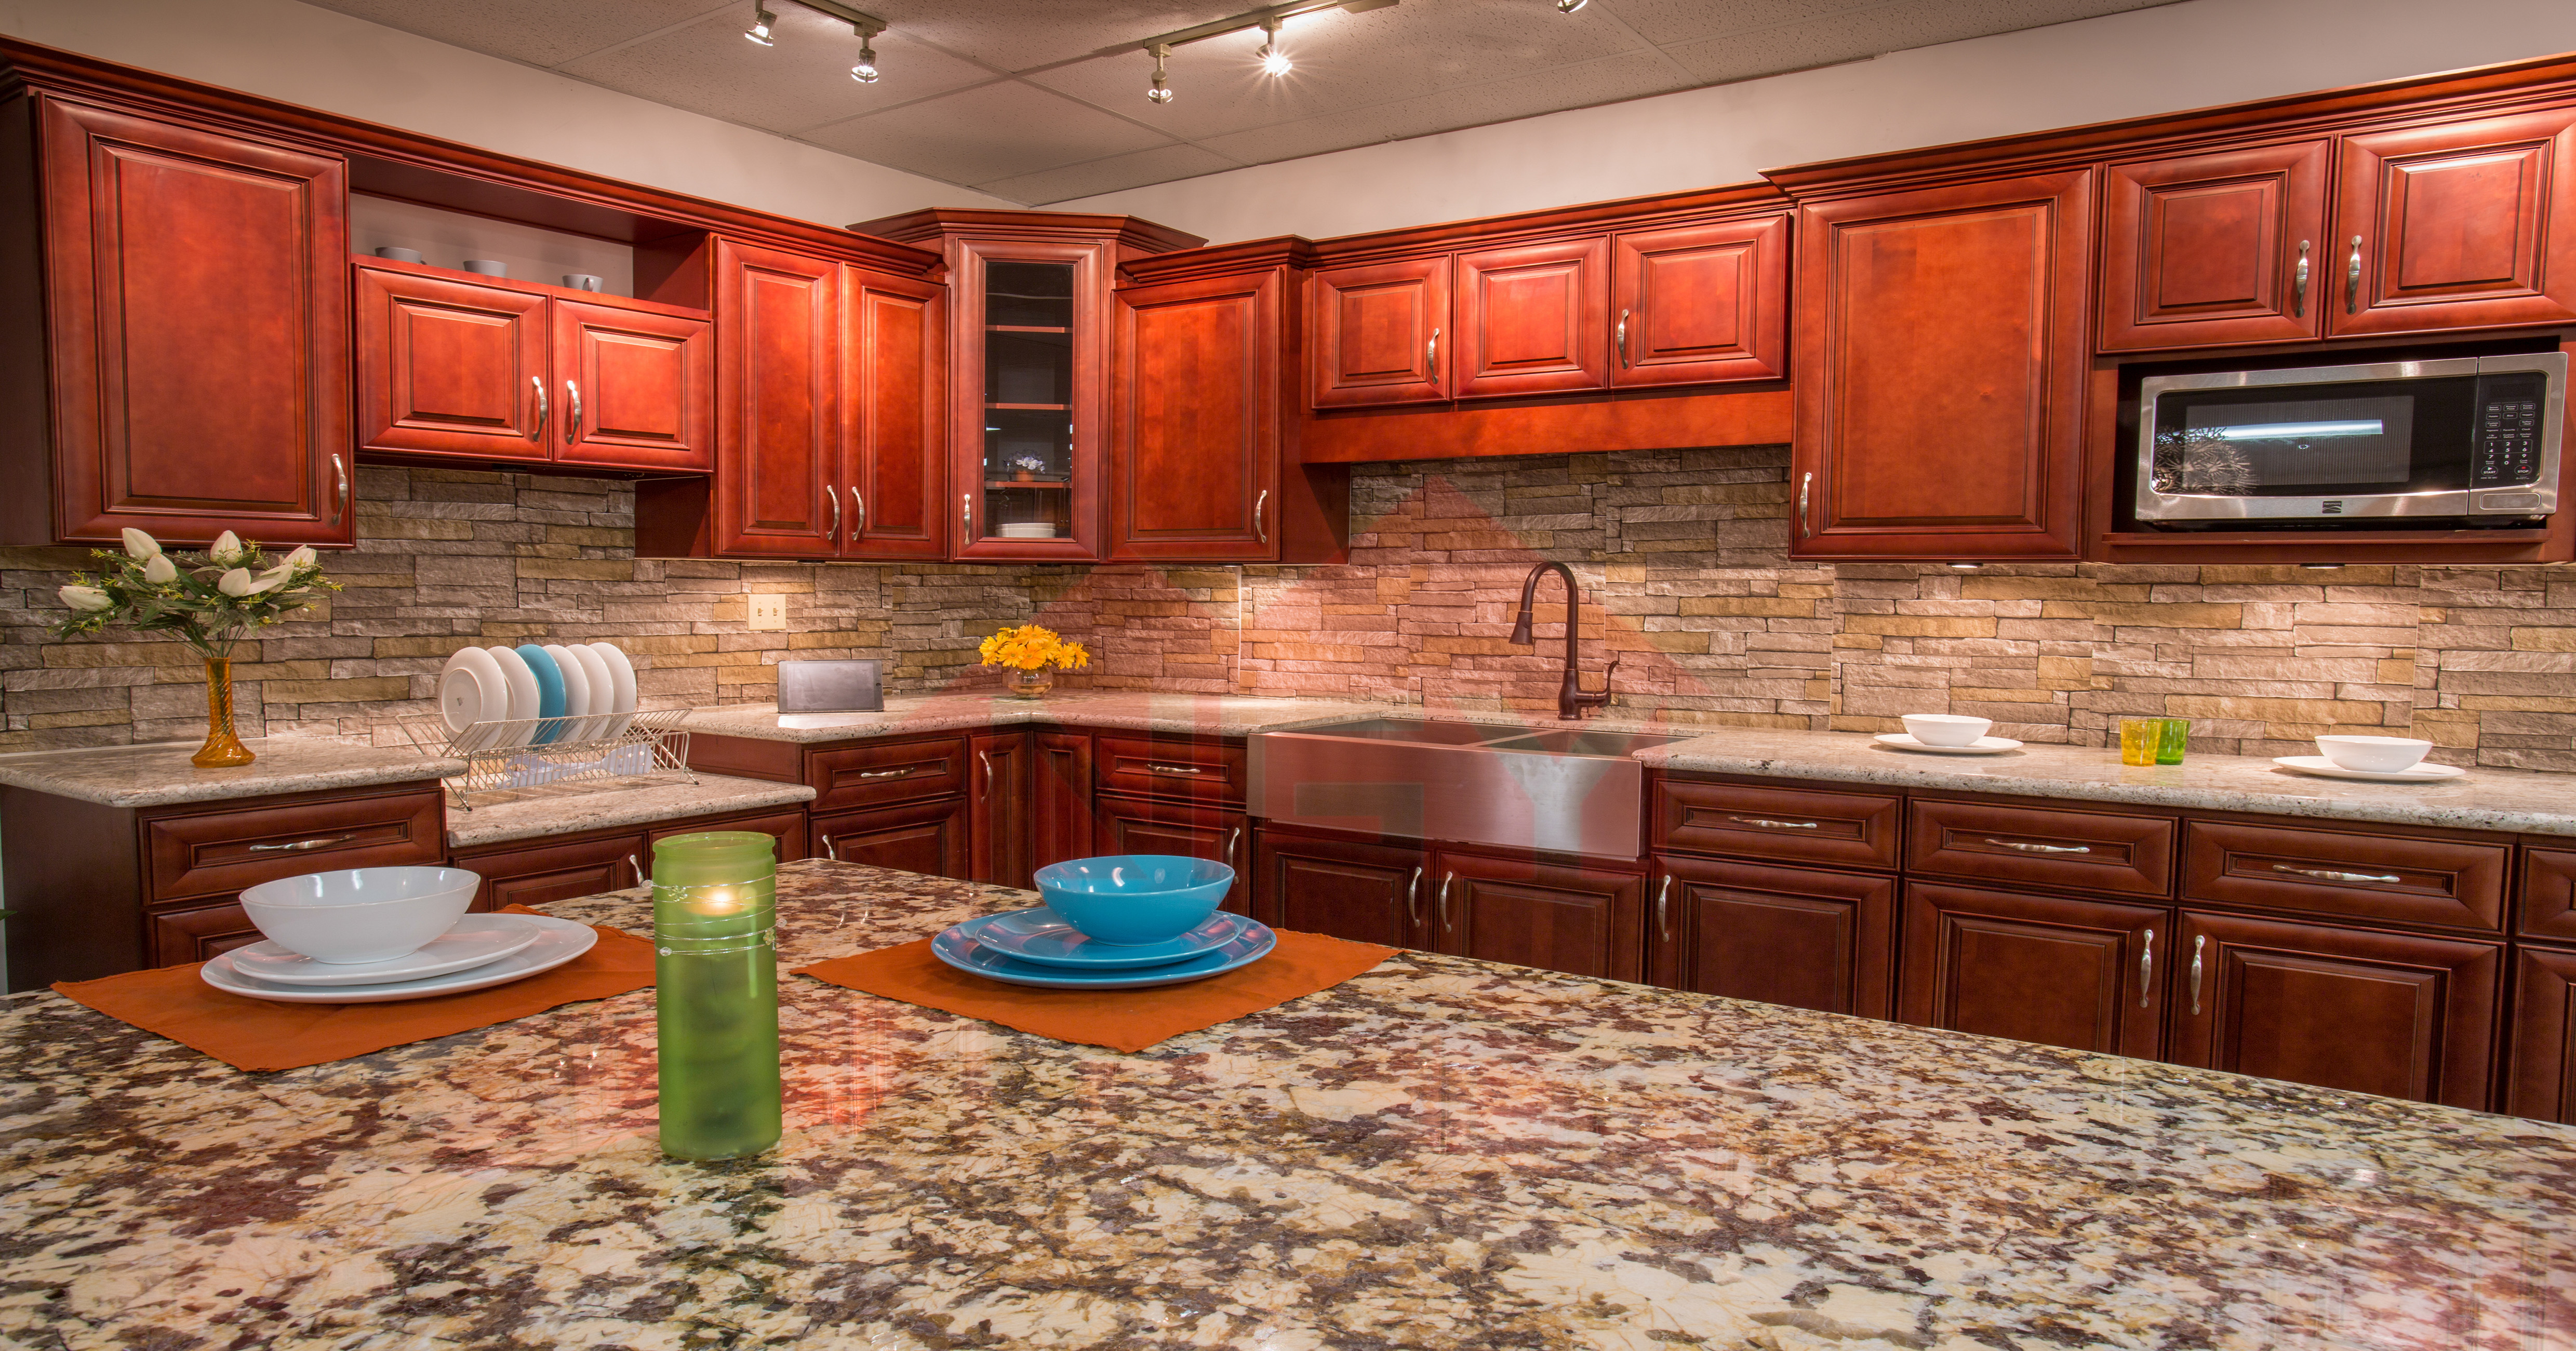 NGY Stones & Cabinets Inc All Products Kitchen Cabinets